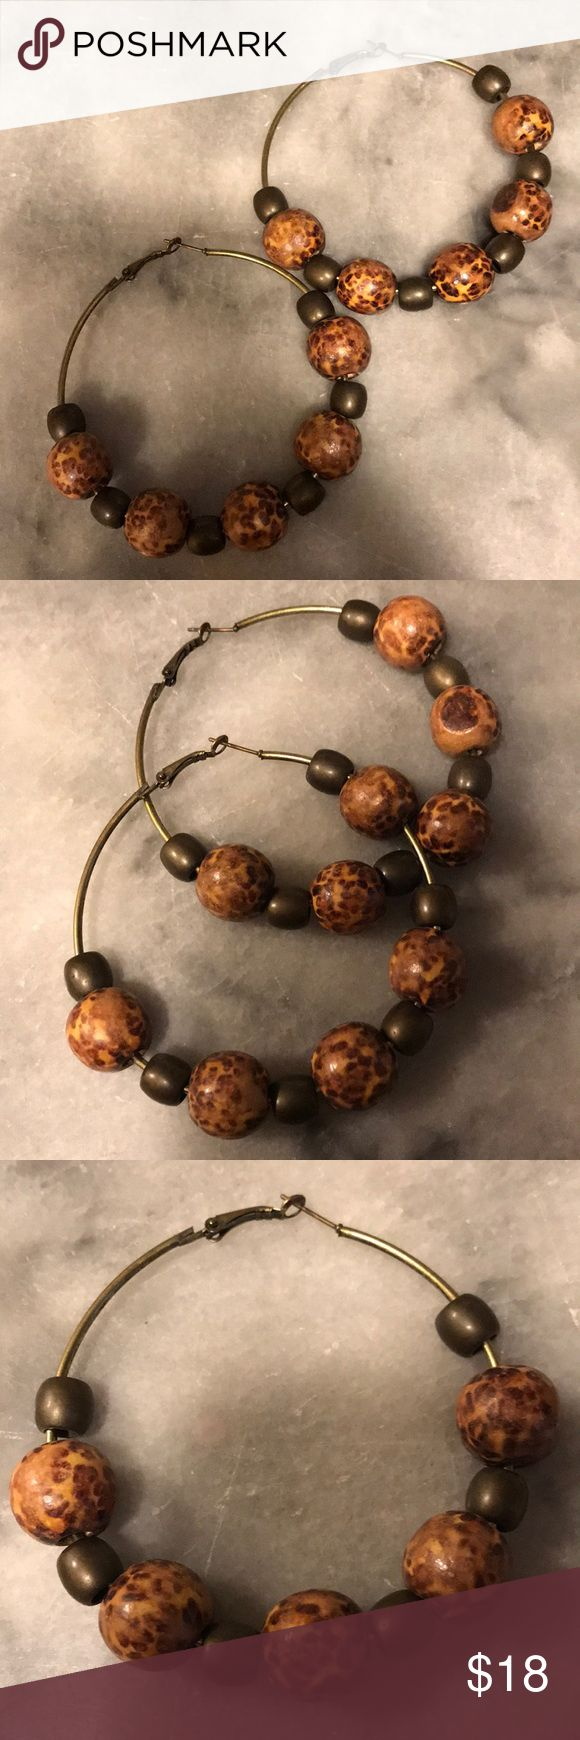 Kenyan Hoop Earrings Wooden animal print beads and olive green beads on antique gold/brass toned hoops. Gorgeous large hoops purchased at a market in Kenya. Jewelry Earrings